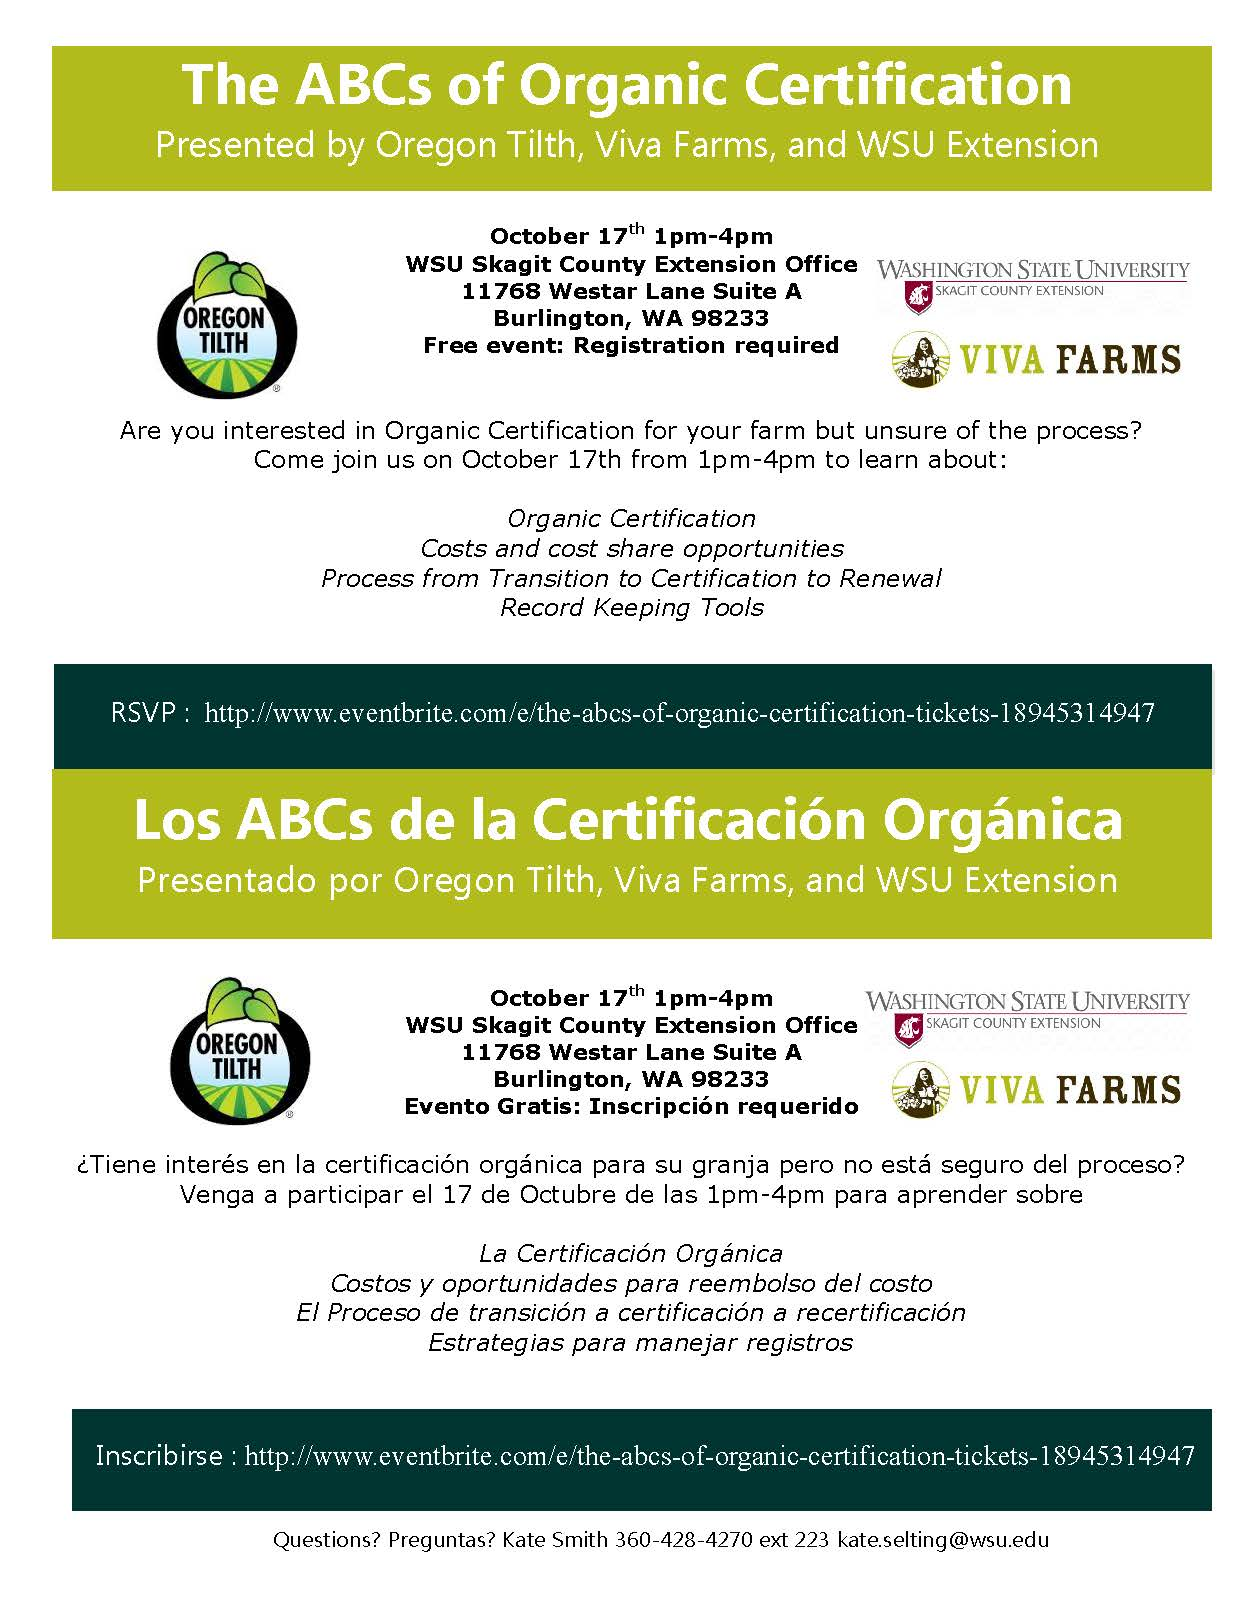 The Abcs Of Organic Certification Skagit County Washington State